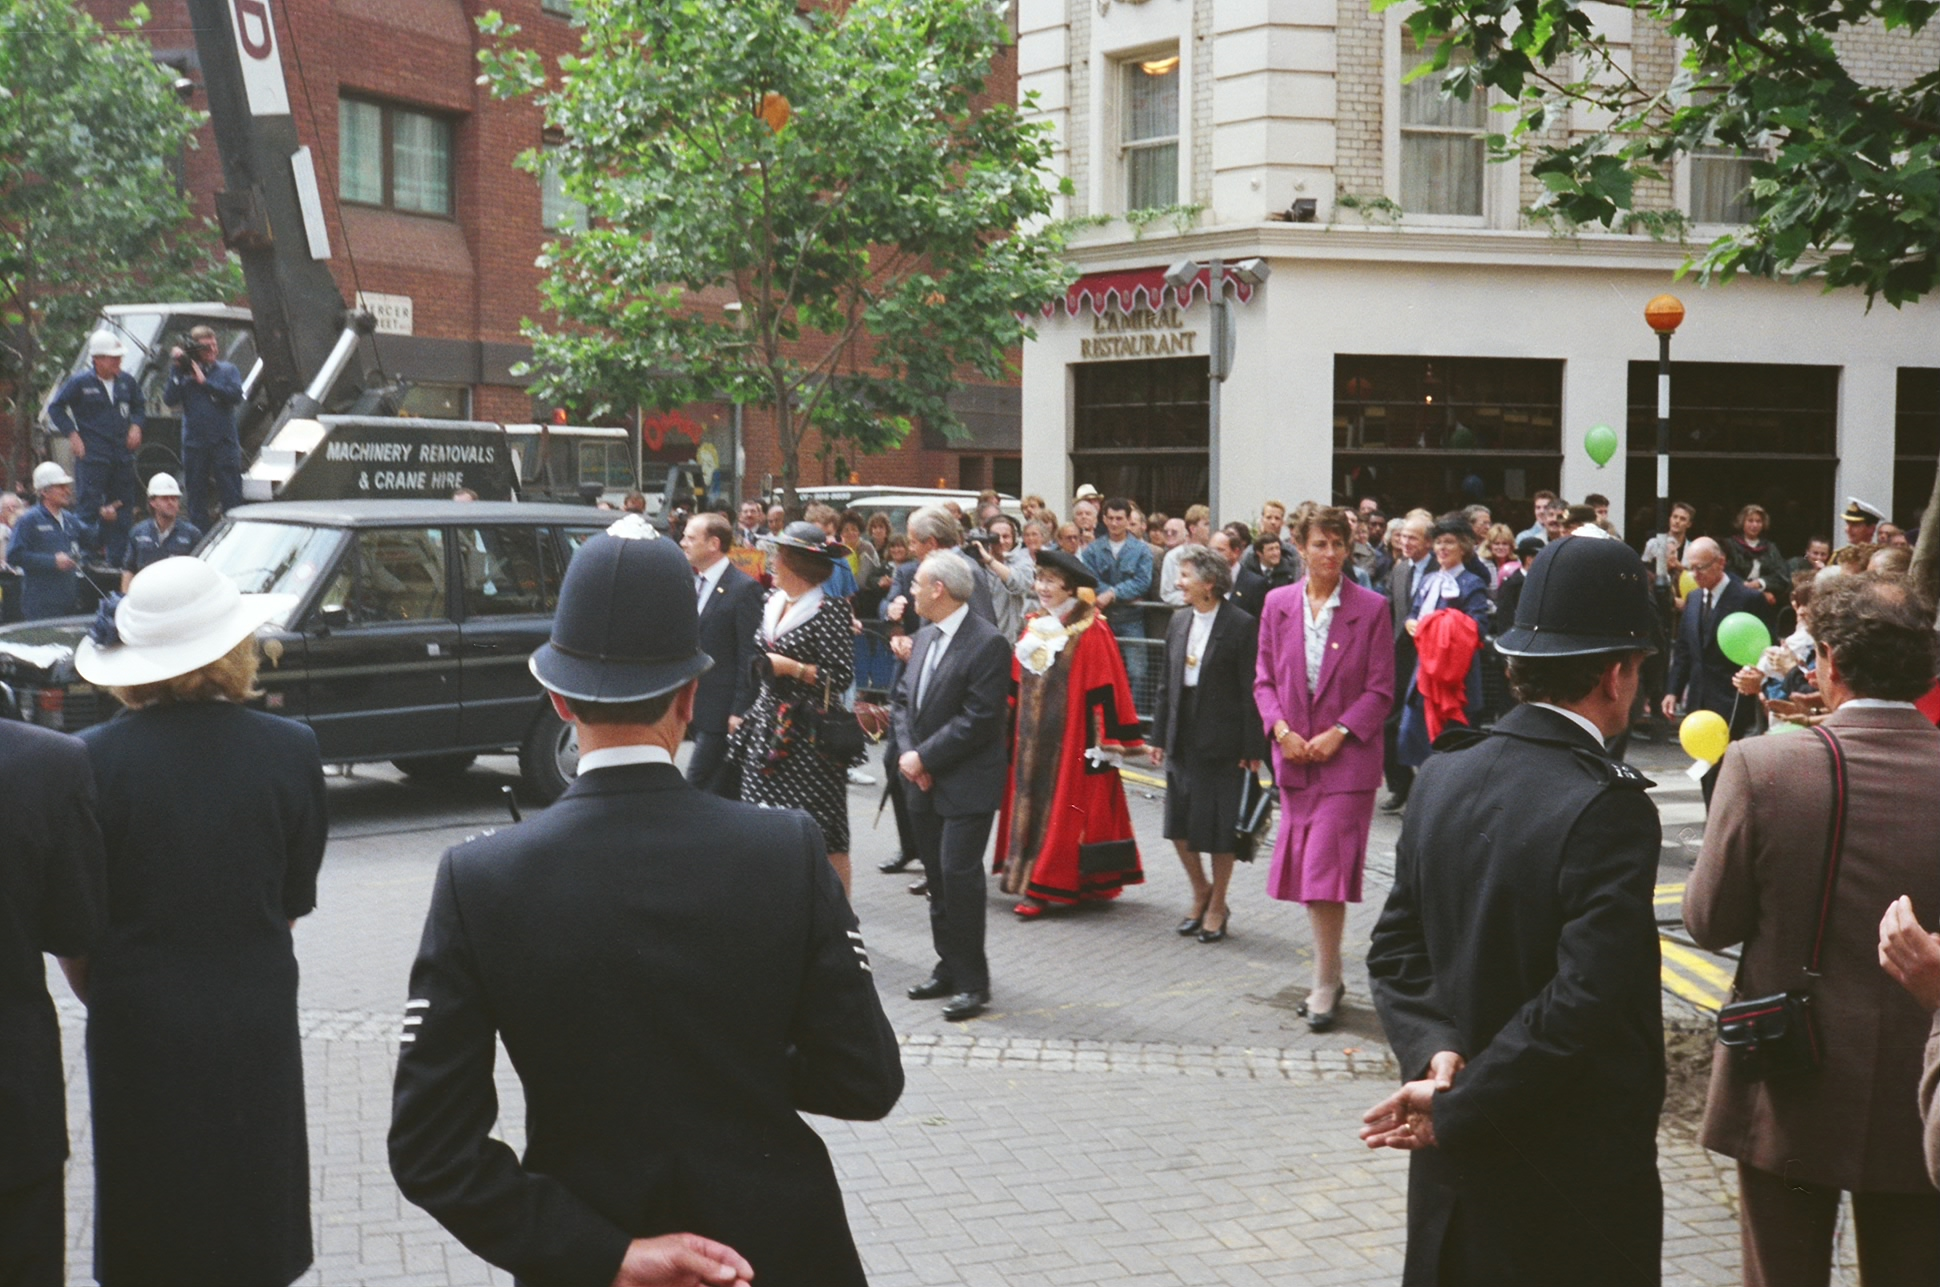 HM Queen Beatrix of The Netherlands and Prince Claus arrive.